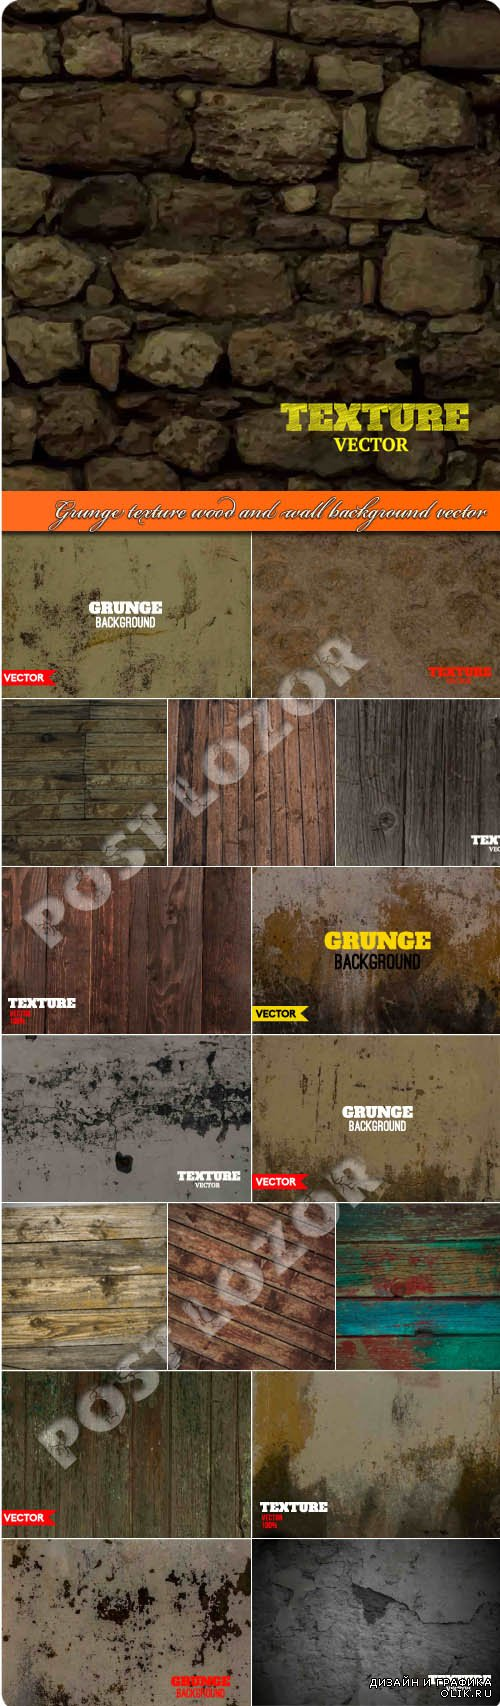 Grunge texture wood and wall background vector